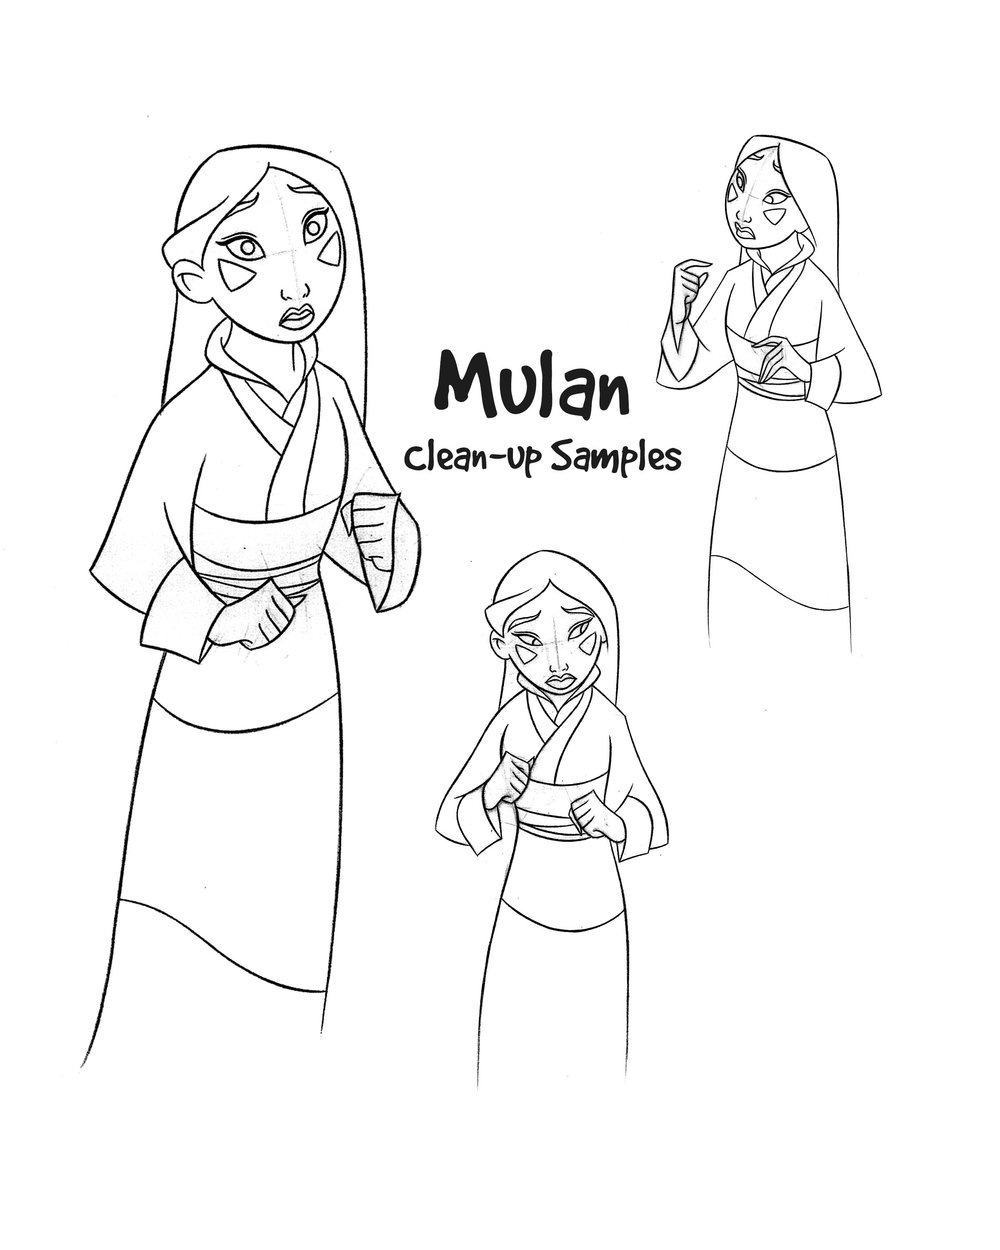 Mulan Clean up Samples.jpg